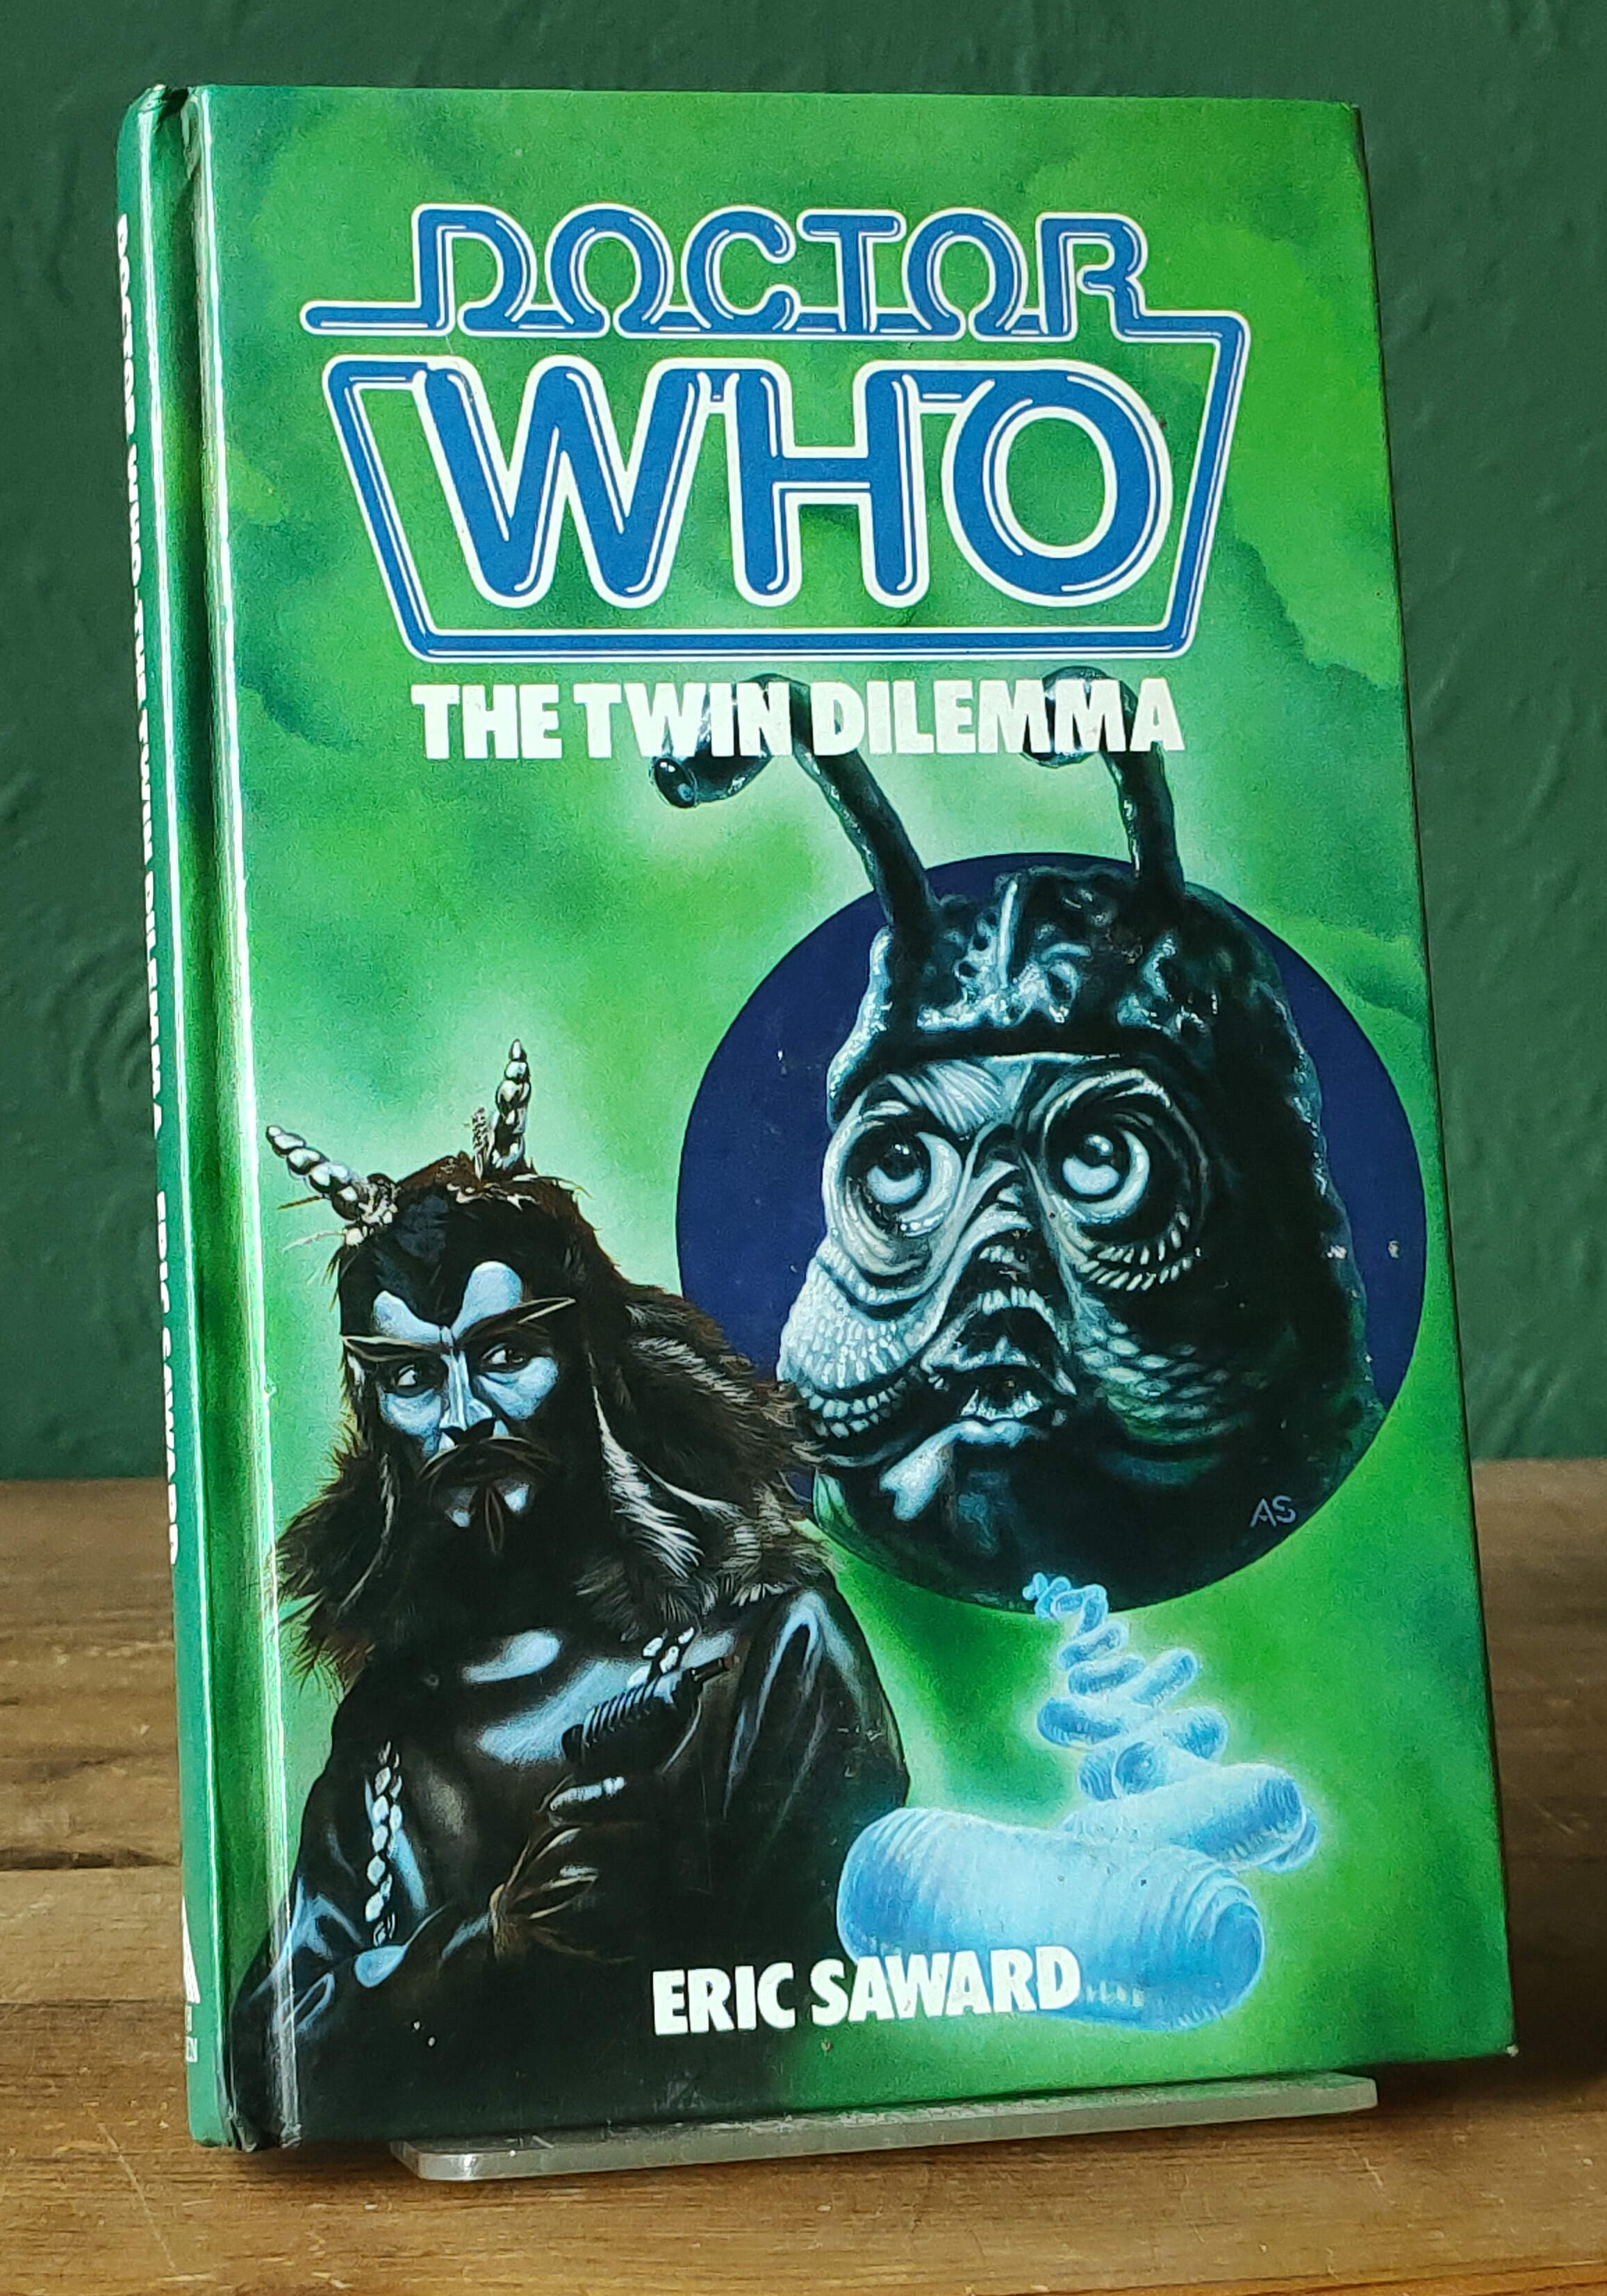 Doctor Who The Twin Dilemma UK First Edition